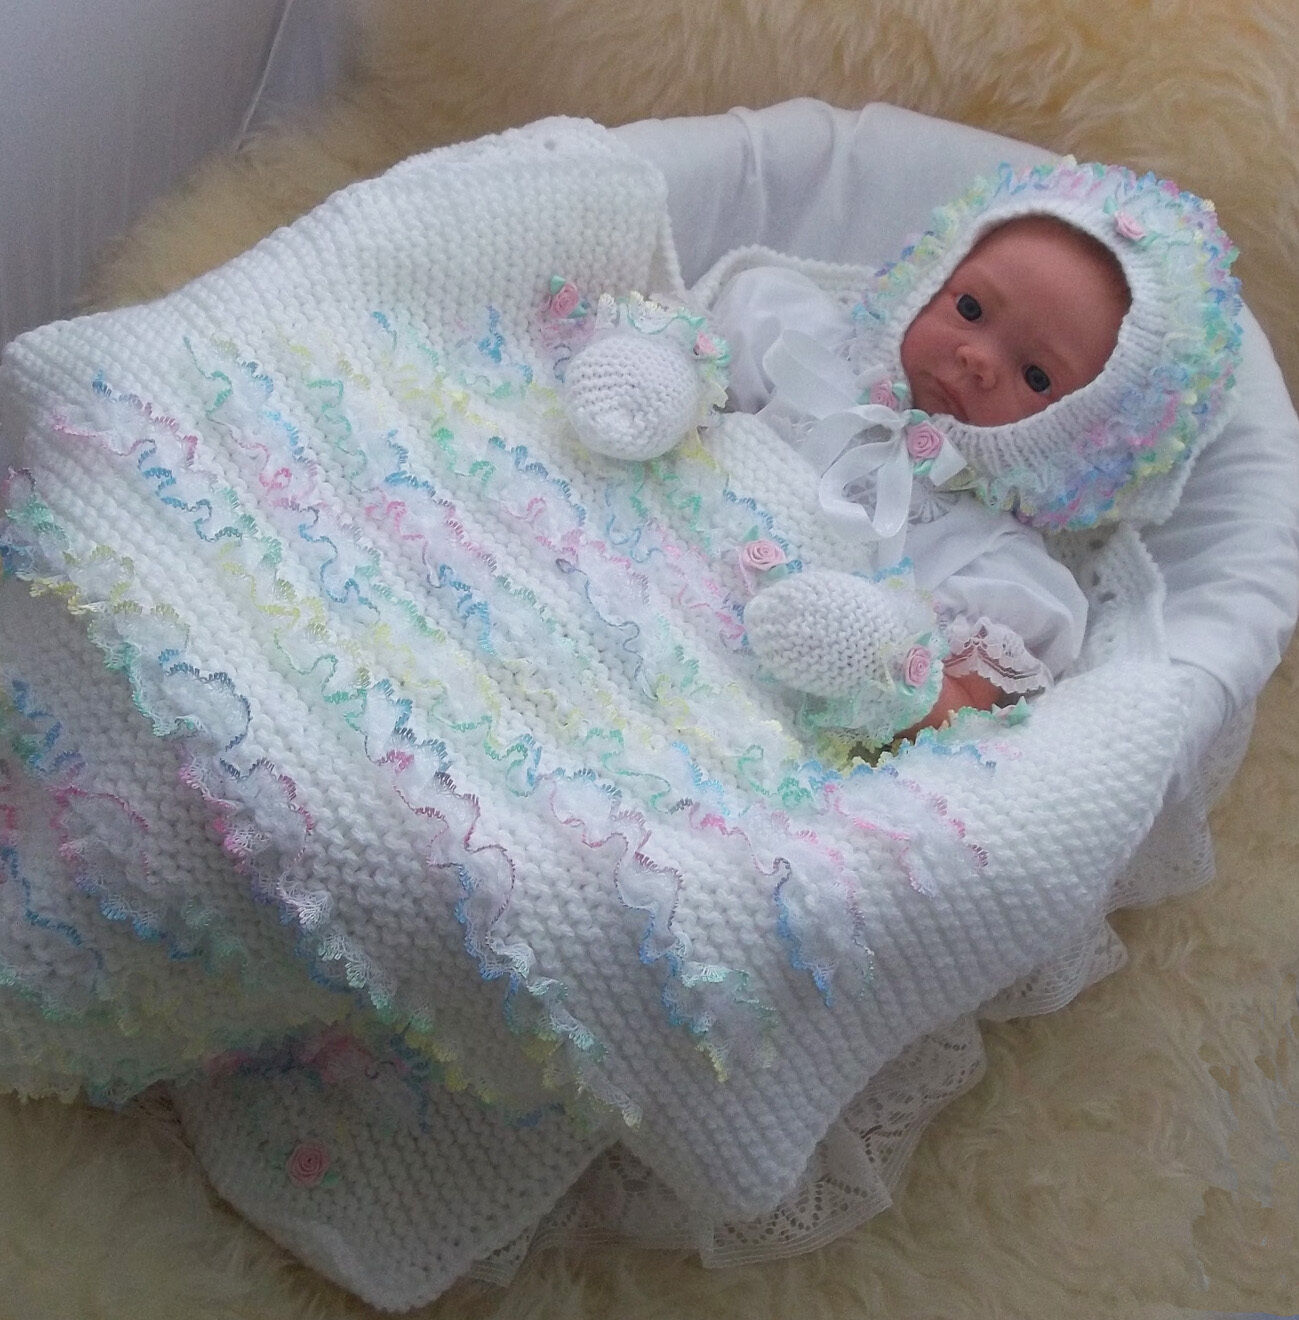 Knitting Pattern For Lace Baby Hat : Baby Knitting Pattern #41 TO KNIT Baby Girls Lace Blanket Hat & Mittens  ...